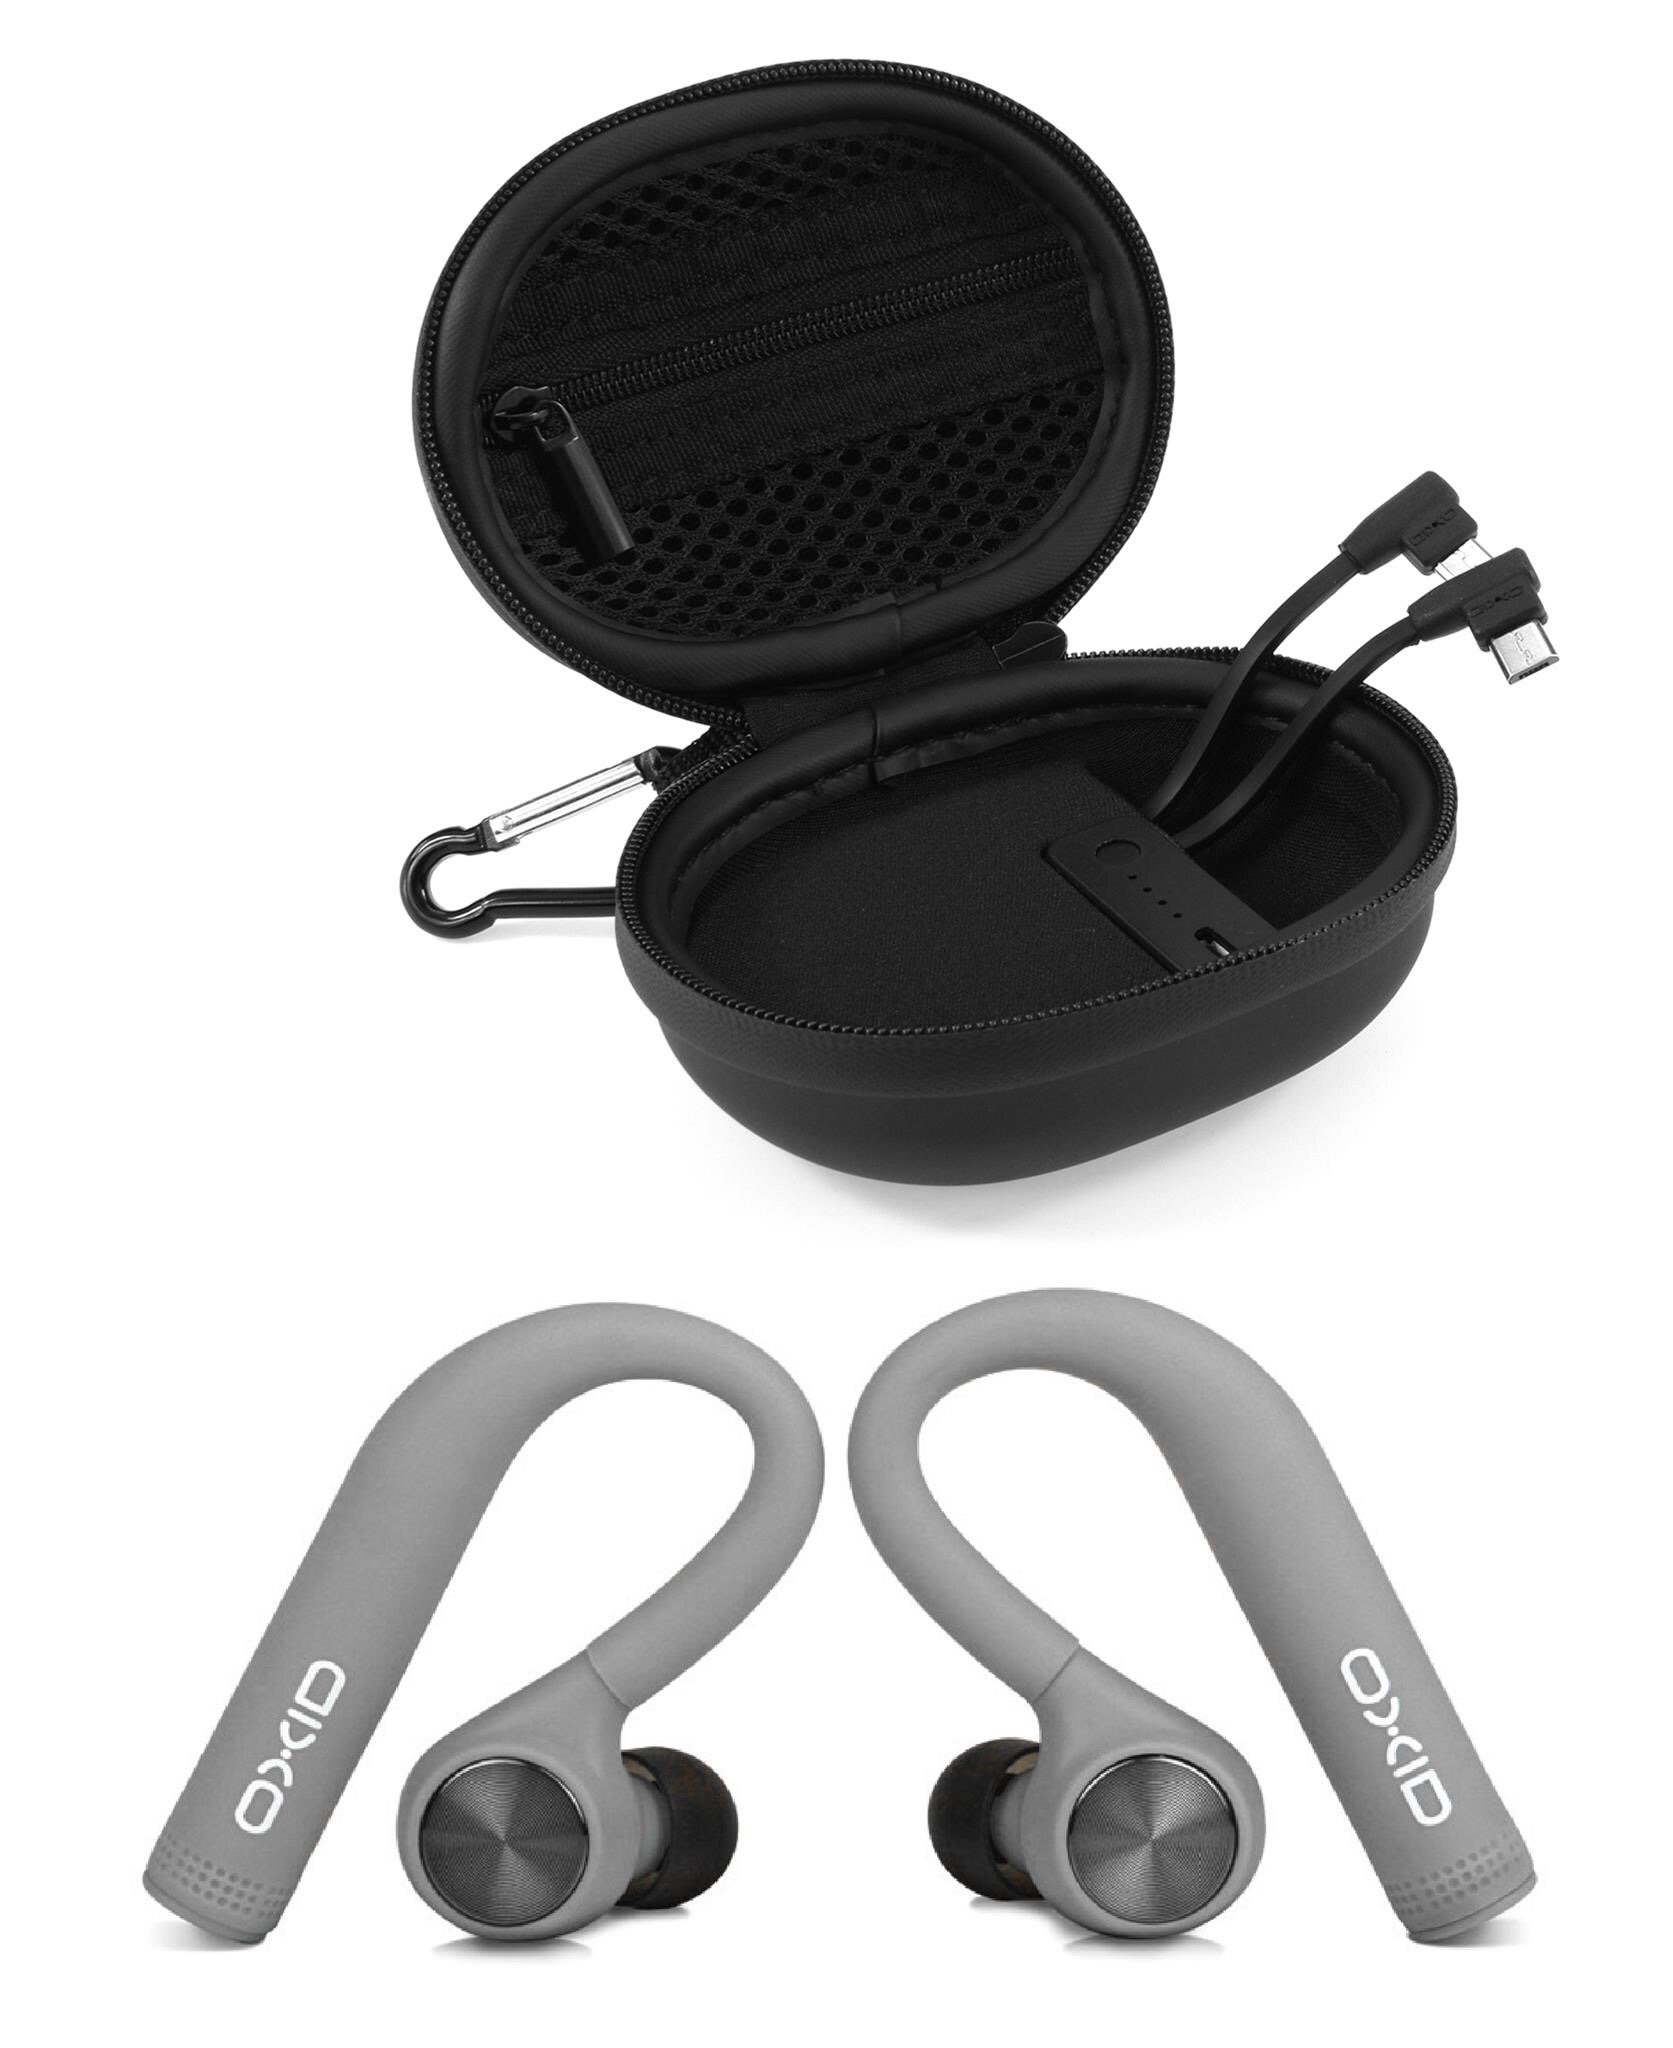 OXID AudioBuds True Wireless Bluetooth Headphones with Charging & Protective Case for Over 15 Hours Playtime - Unique Over-Ear Design Stays in Place While Running - Not Compatible with Android (Grey)